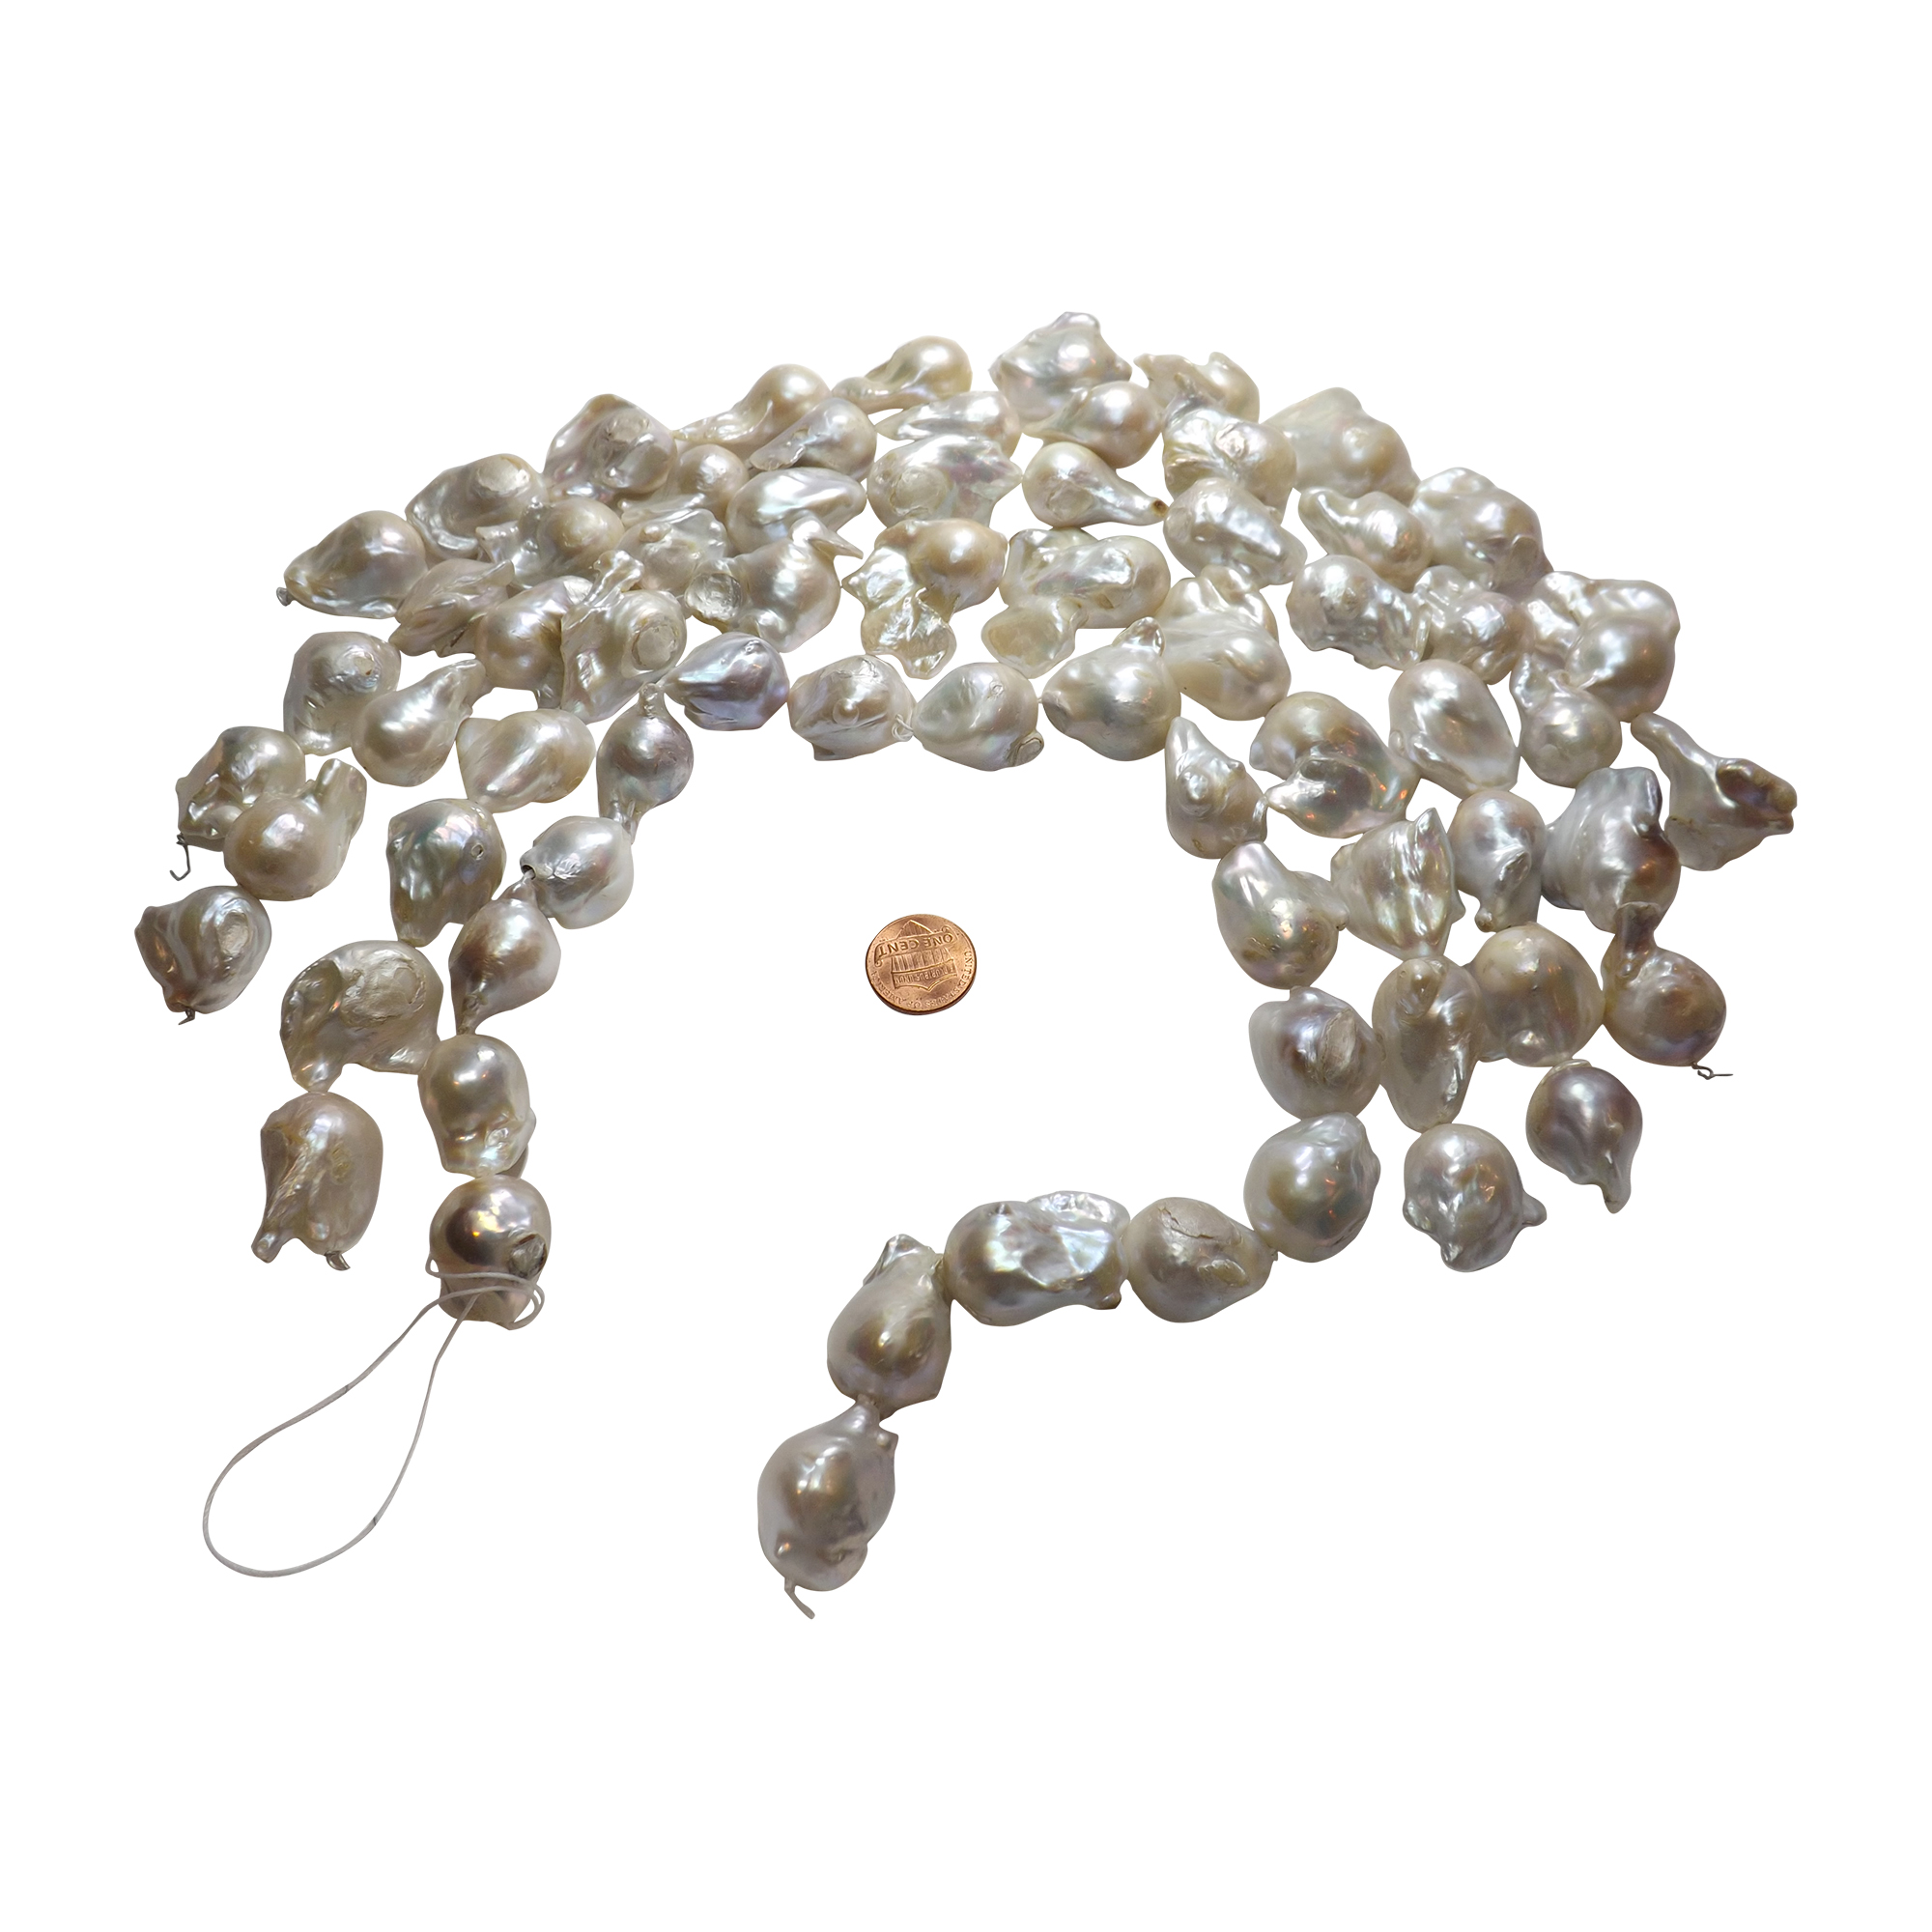 Huge 15 25mm Baroque Pearl Strand In White With Nice Luster